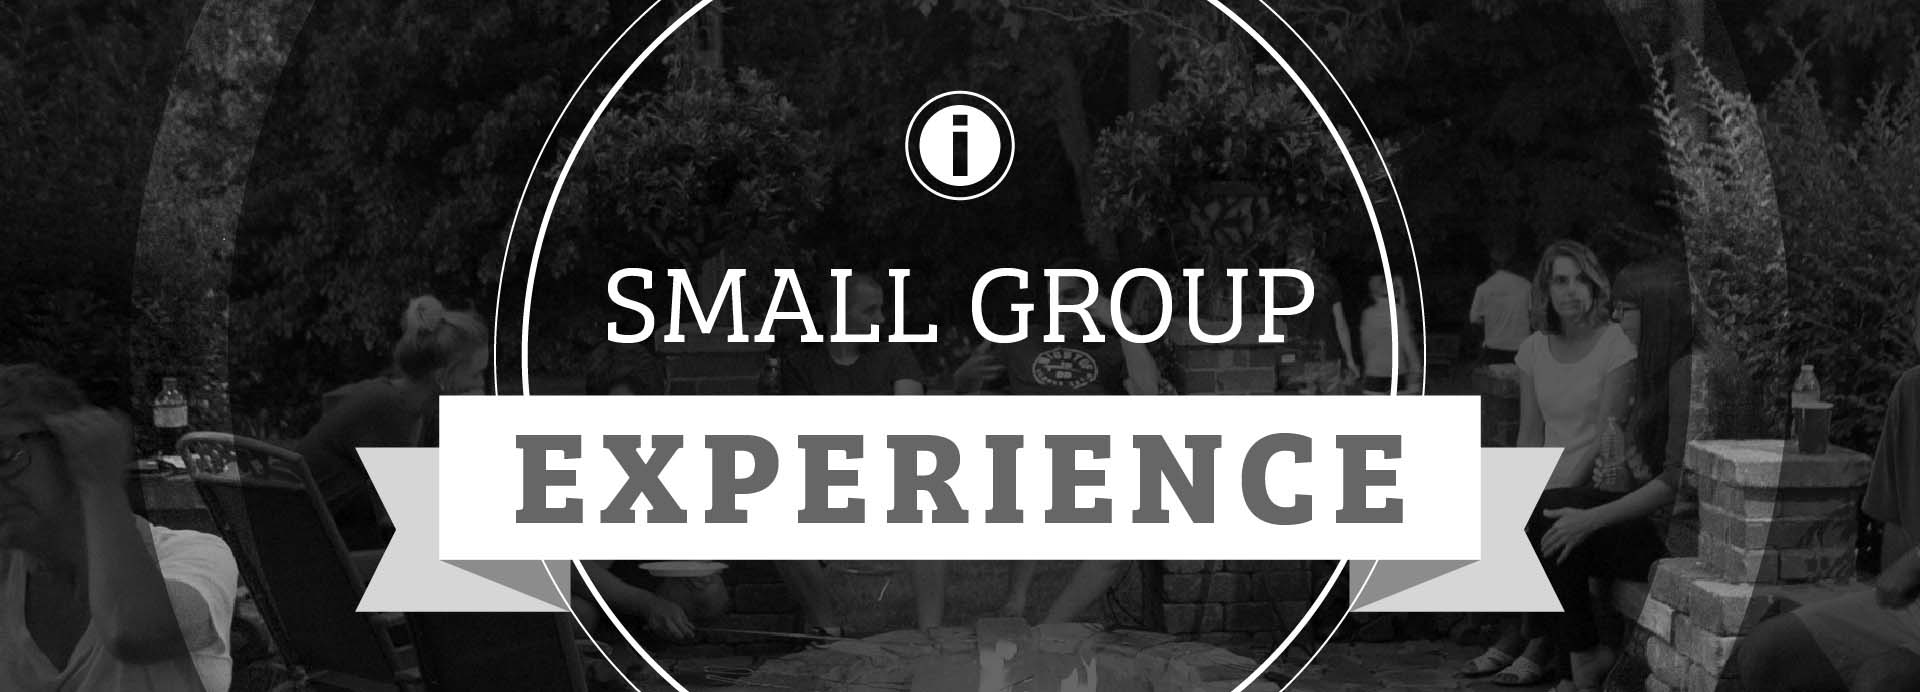 Impact Small Group Experience